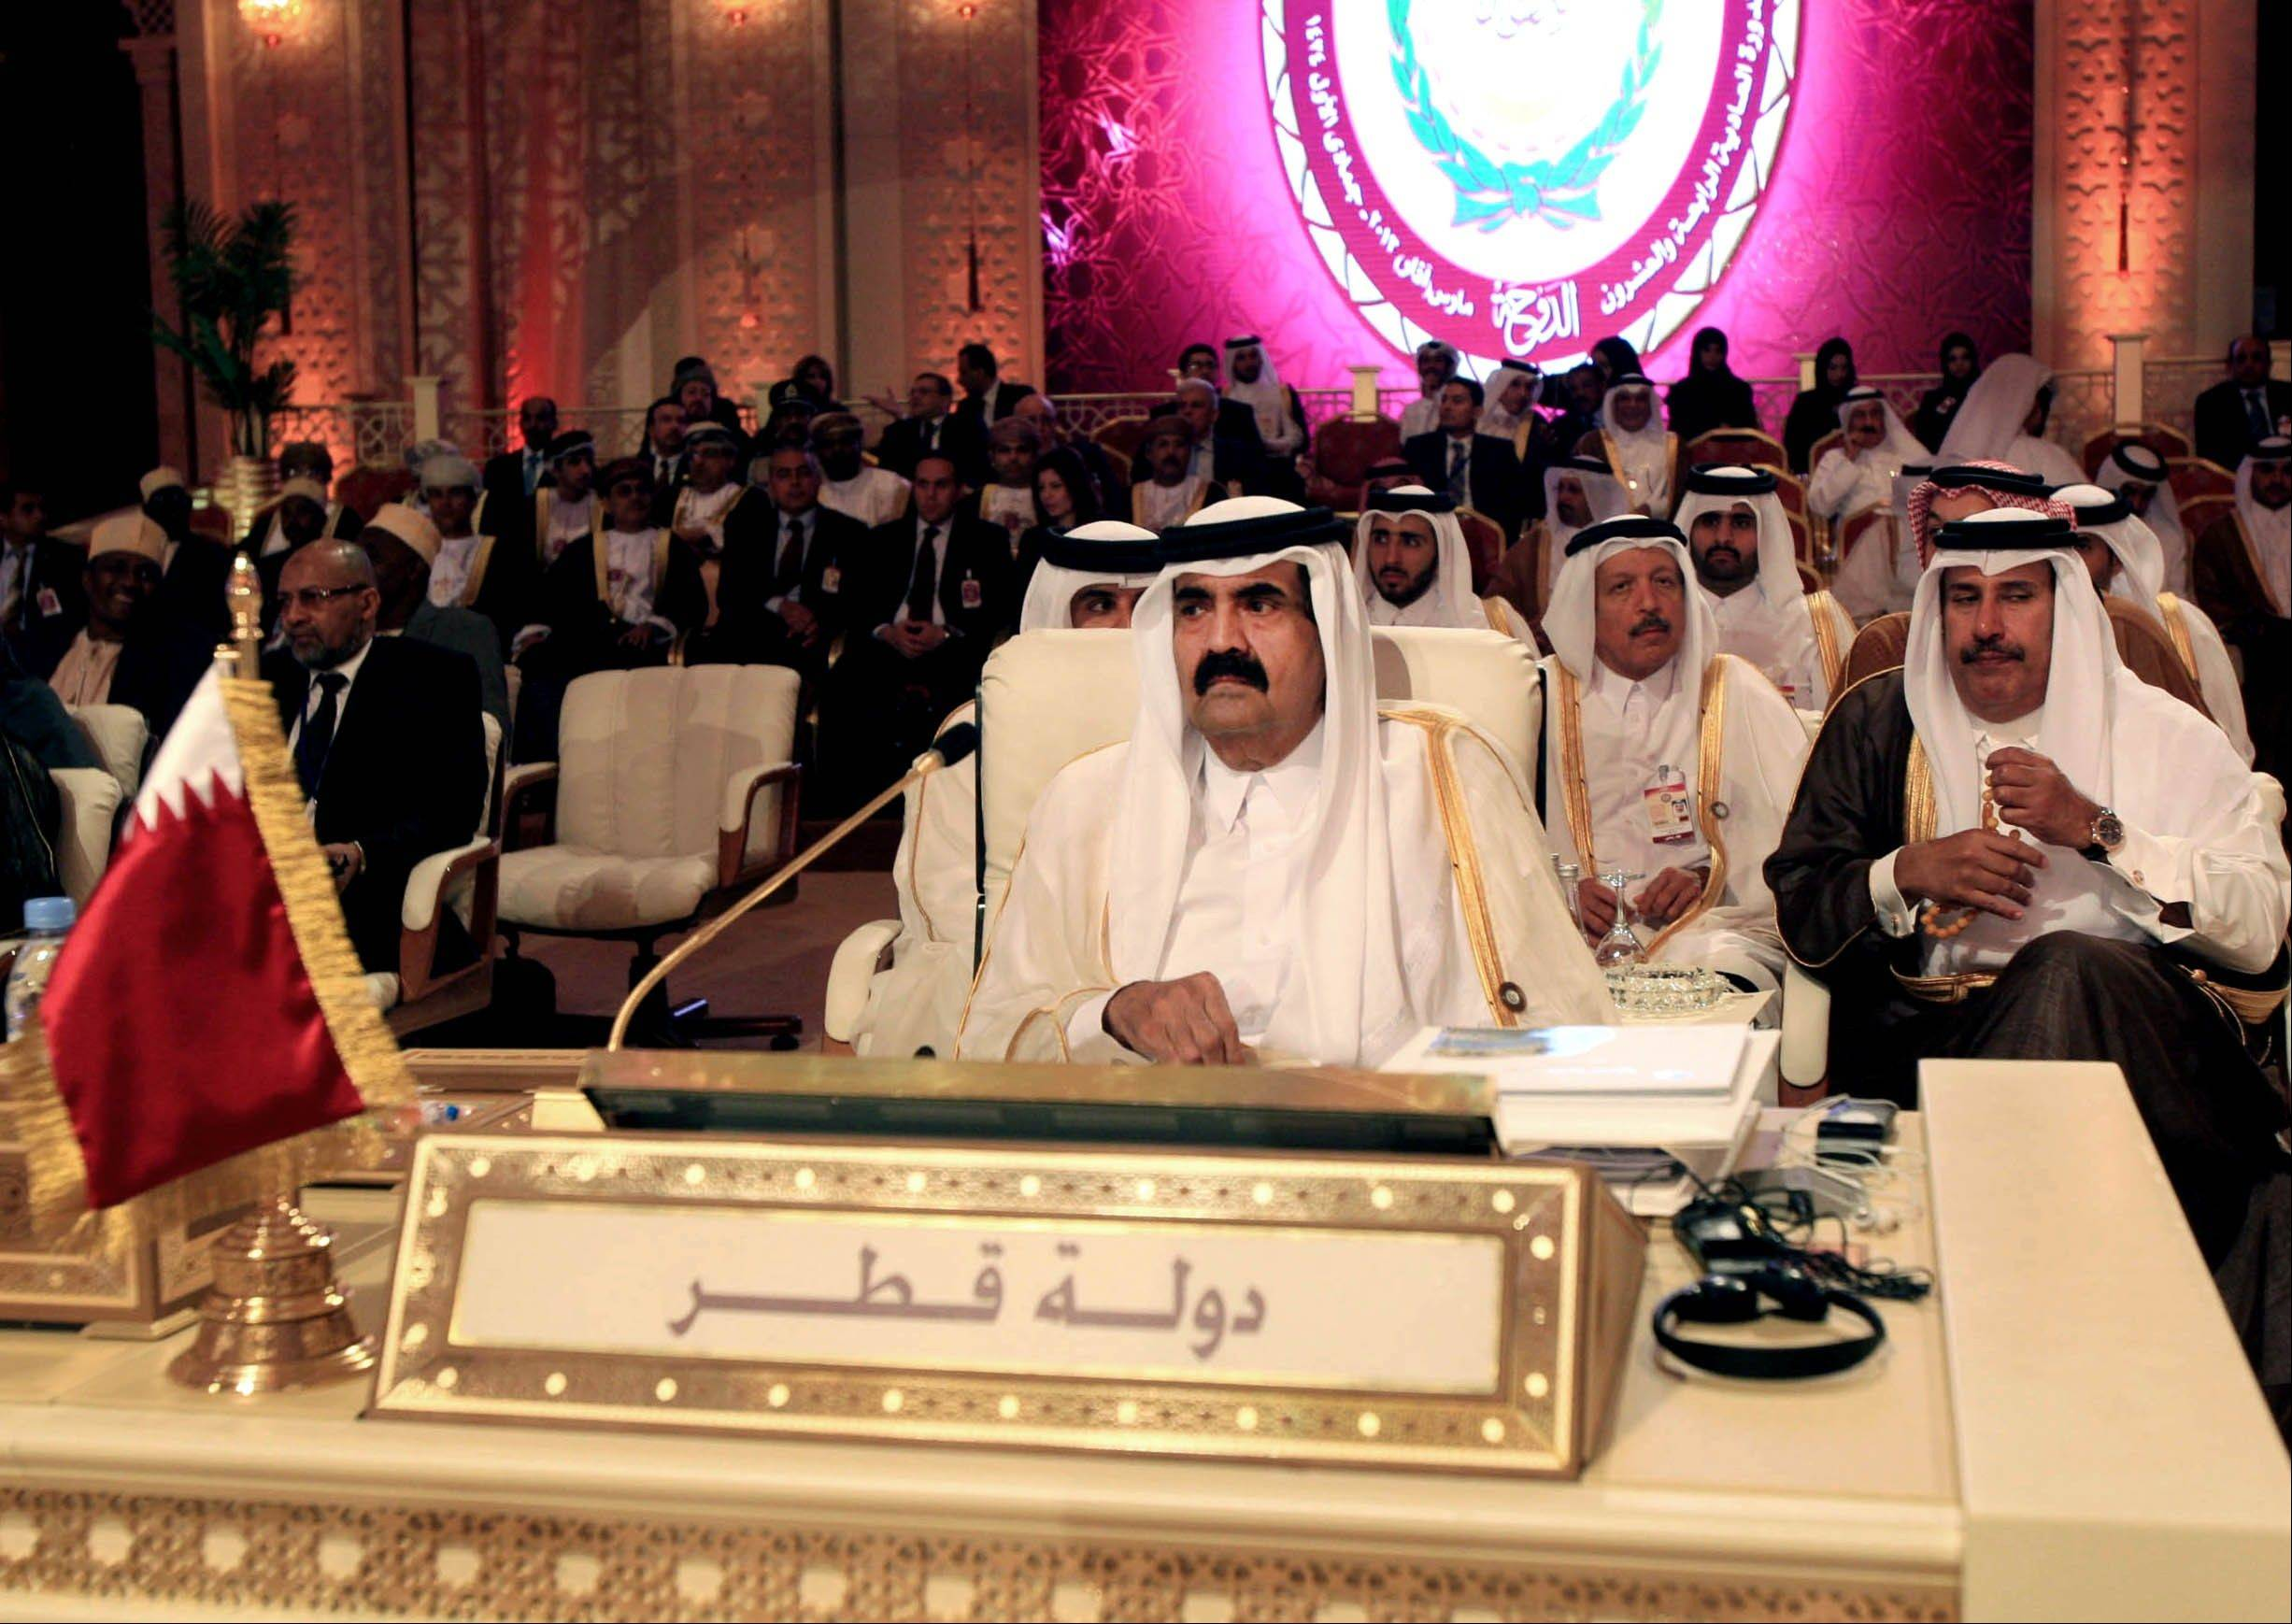 Emir of Qatar Sheik Hamad Bin Khalifa Al Thani, center, attends the opening session of the Arab League Summit in Doha, Qatar, Tuesday.